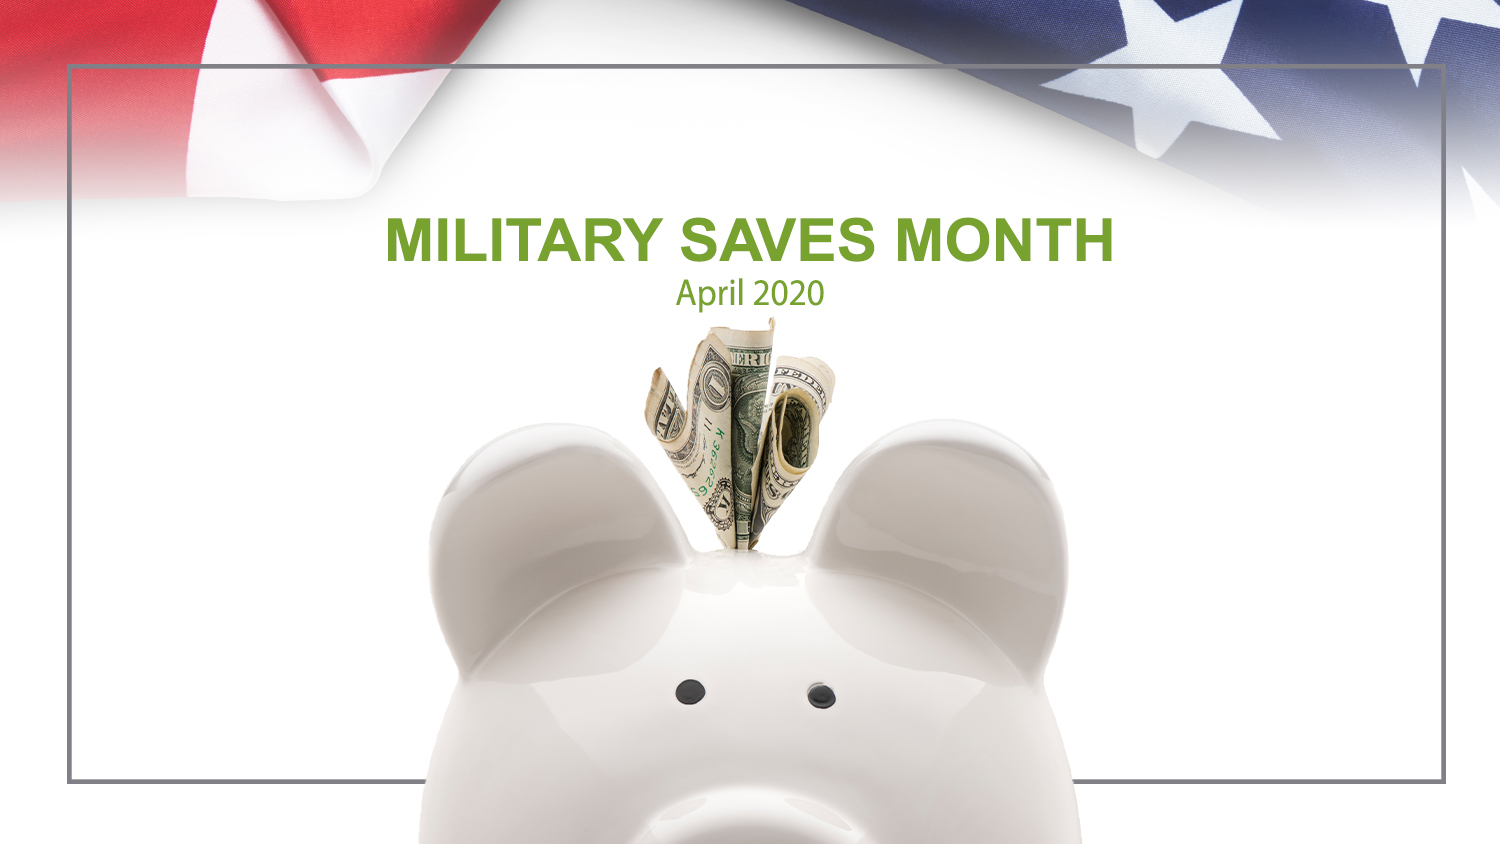 Military Saves Month